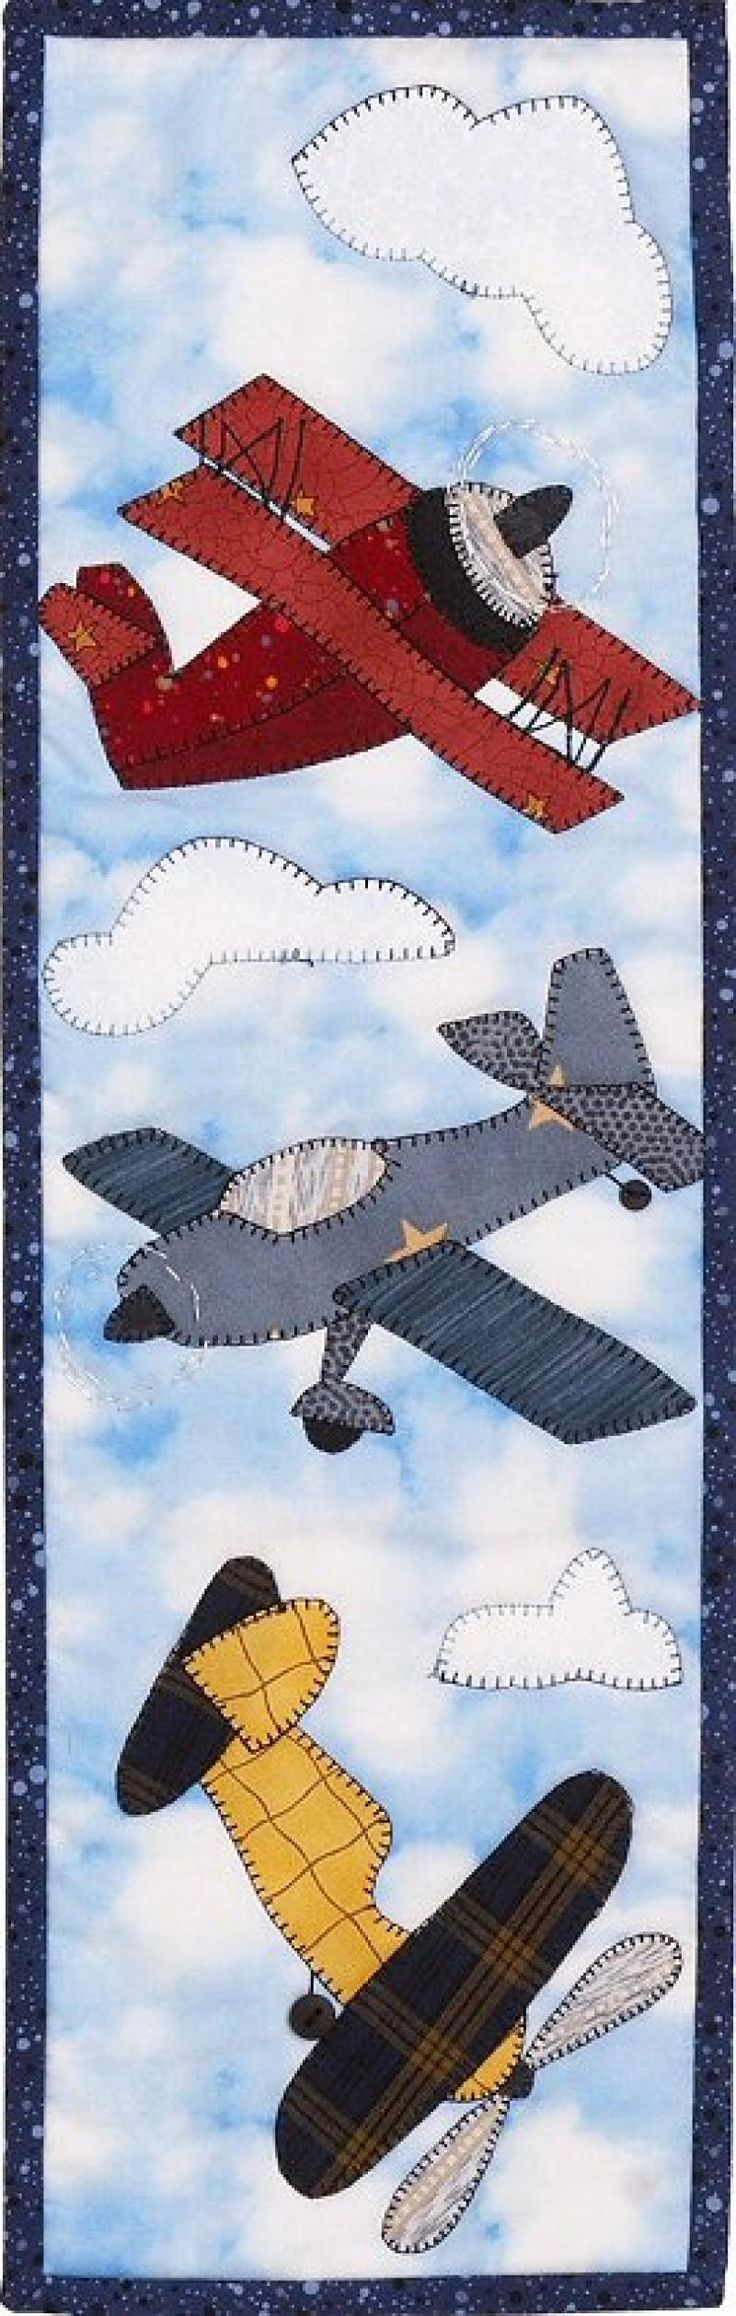 Patch Abilities Inc.  Available at www.patchabilities.com P80 Airplanes